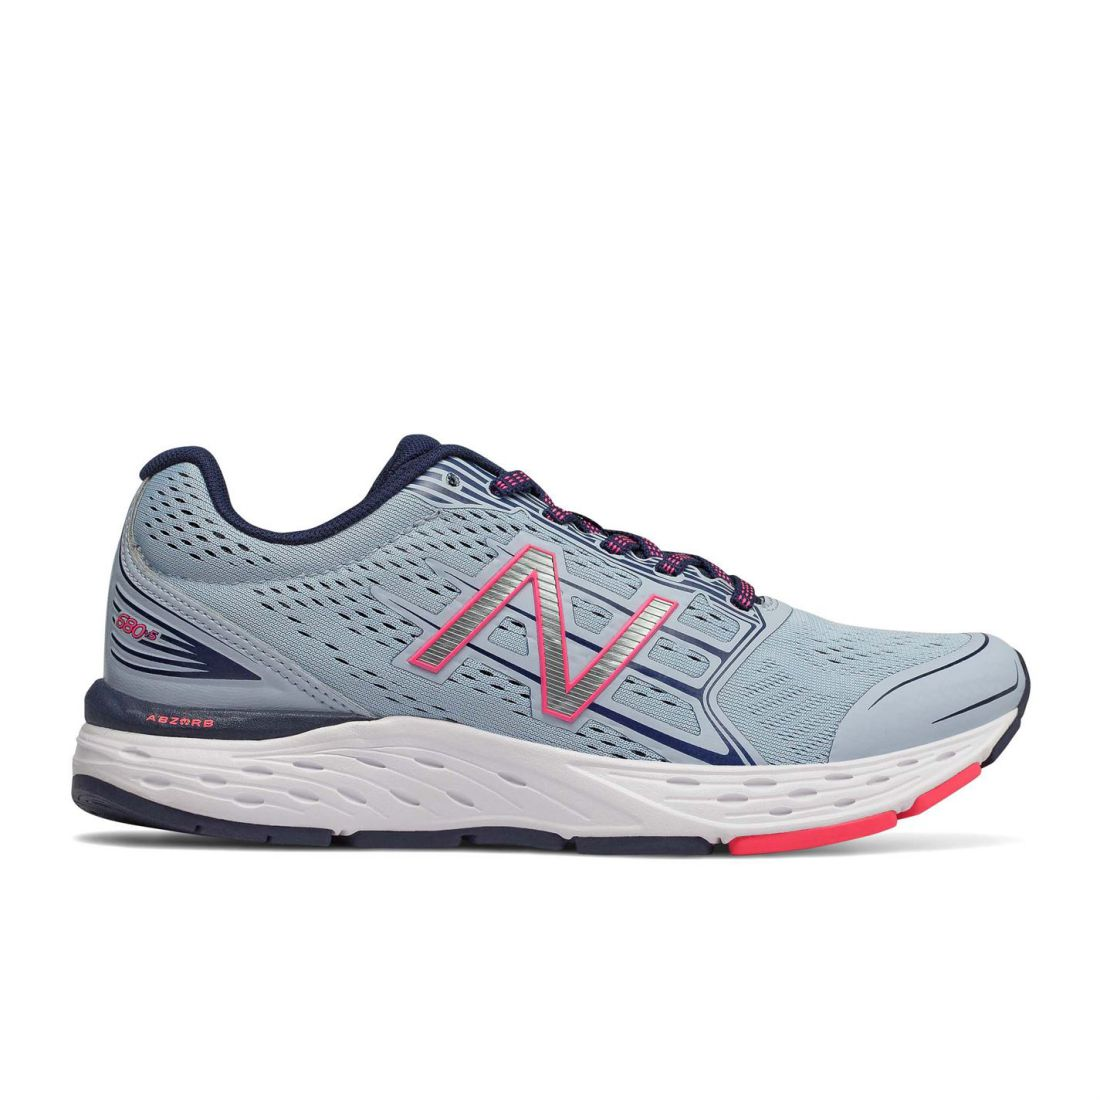 New Balance Womens 680v5 Road Running shoes